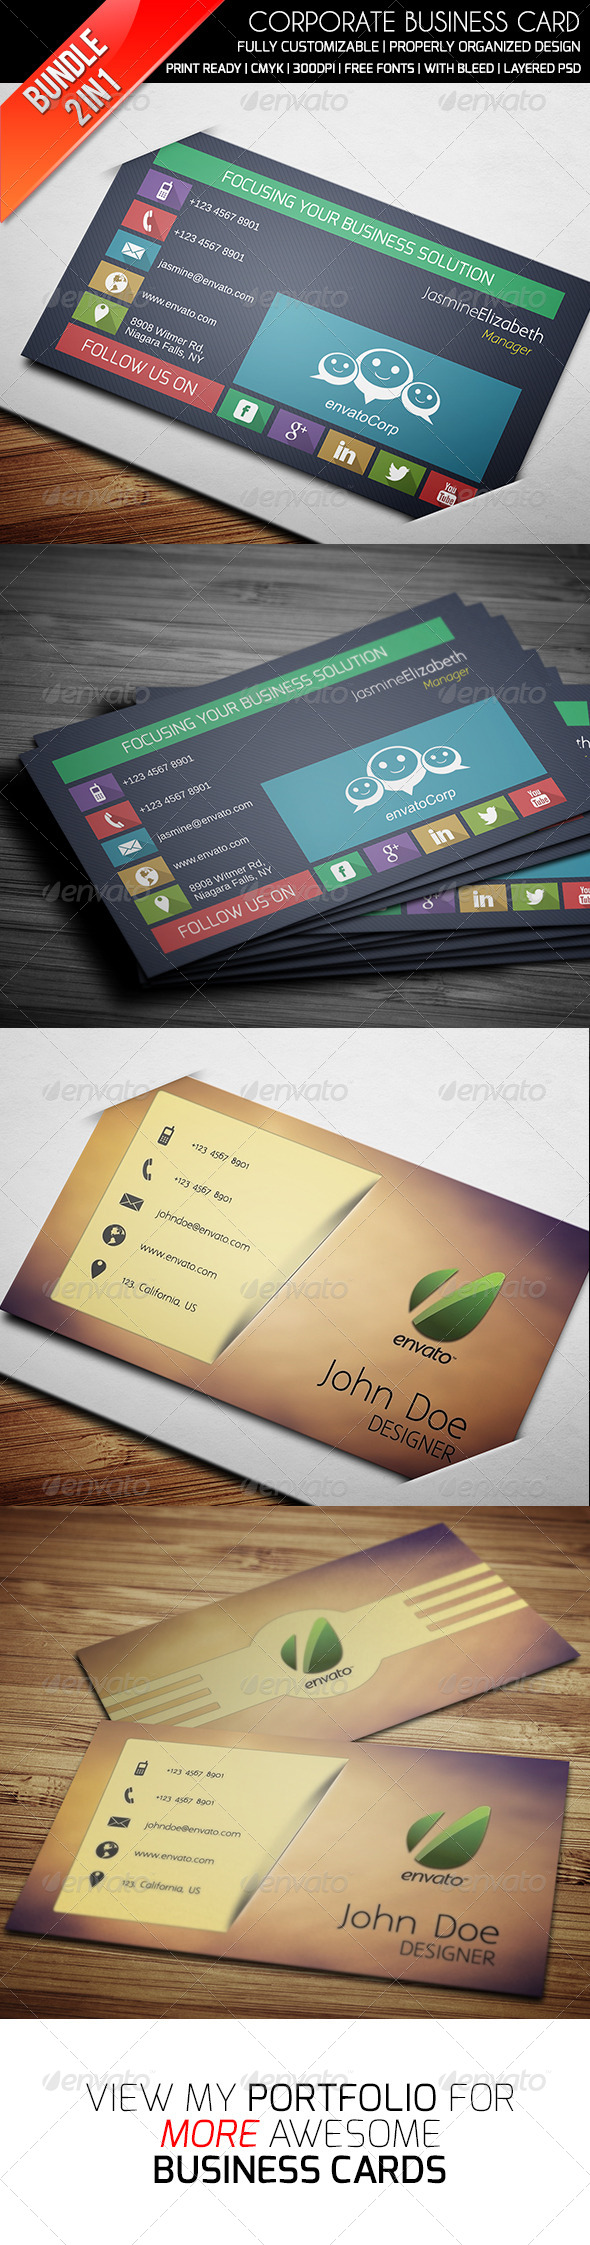 Ethanfx Business Card Bundle Vol 5